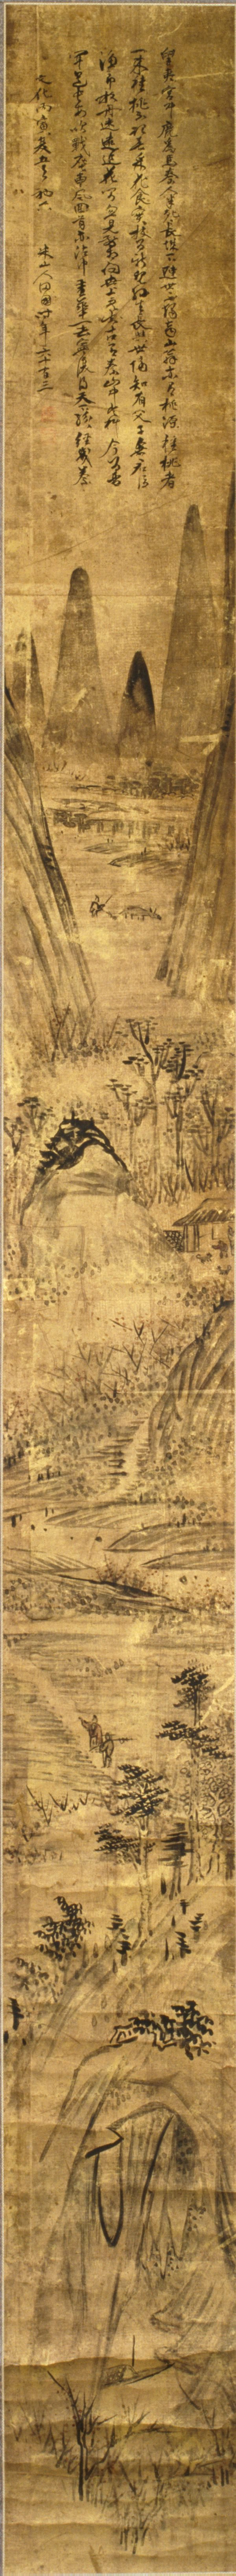 An image of The land of peach blossom